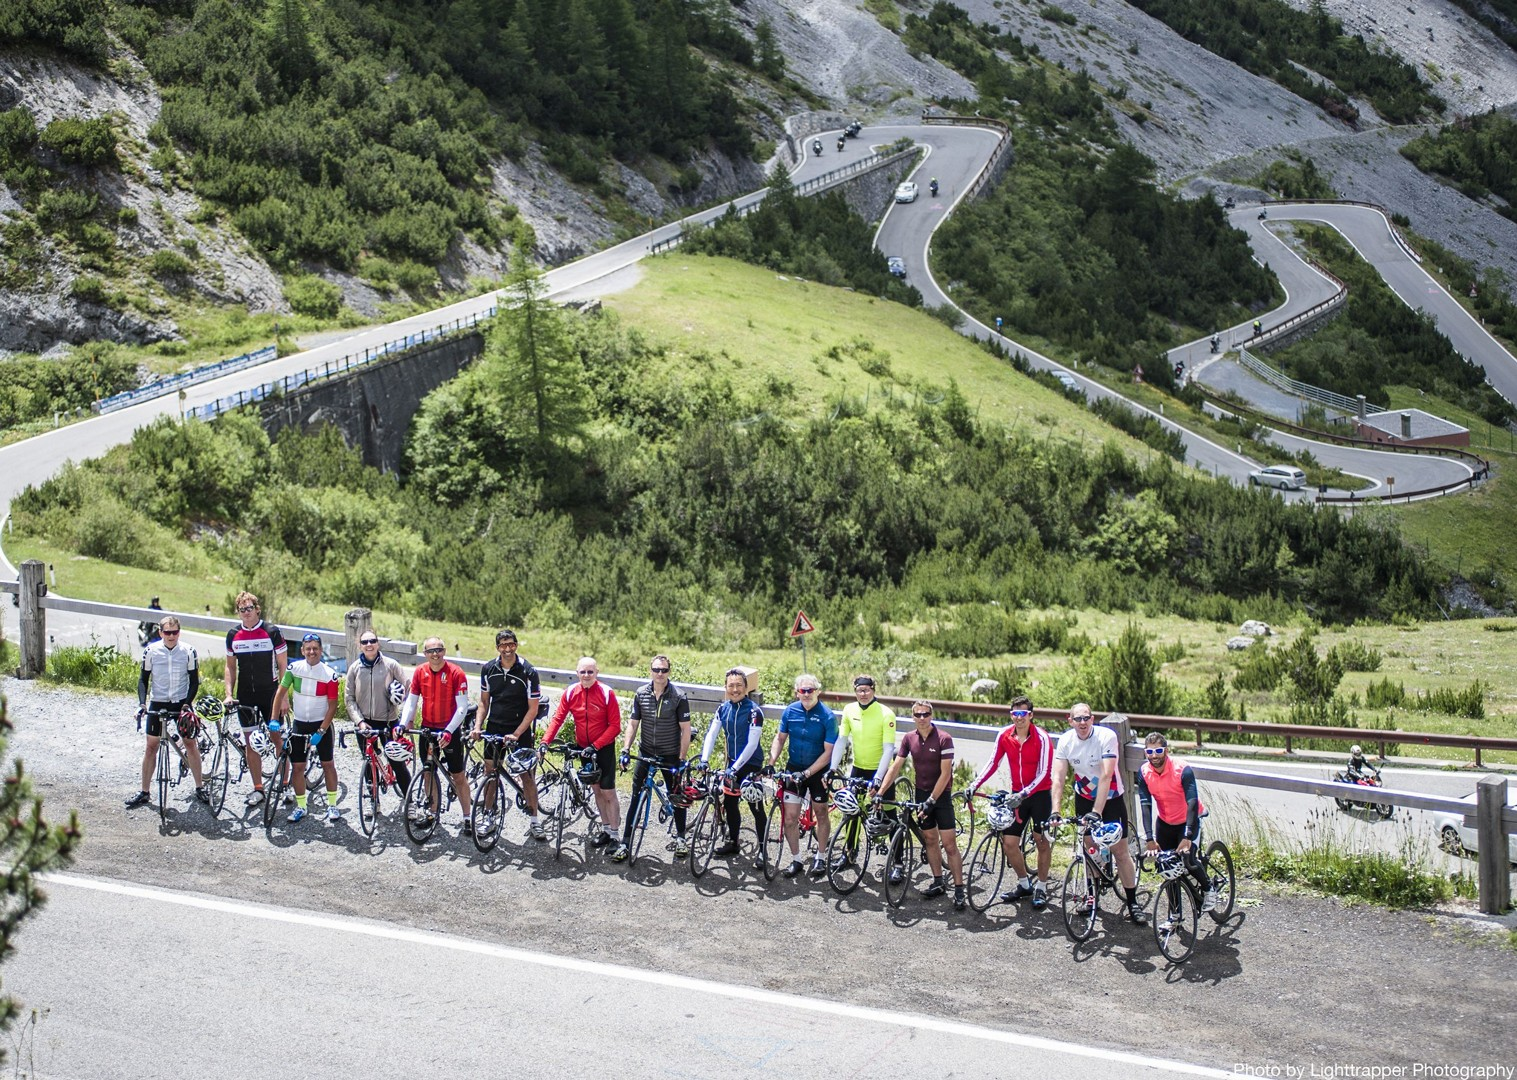 italian-alps-stelvio-guided-road-cycling-holiday.jpg - Italy - Italian Alps - Guided Road Cycling Holiday - Road Cycling